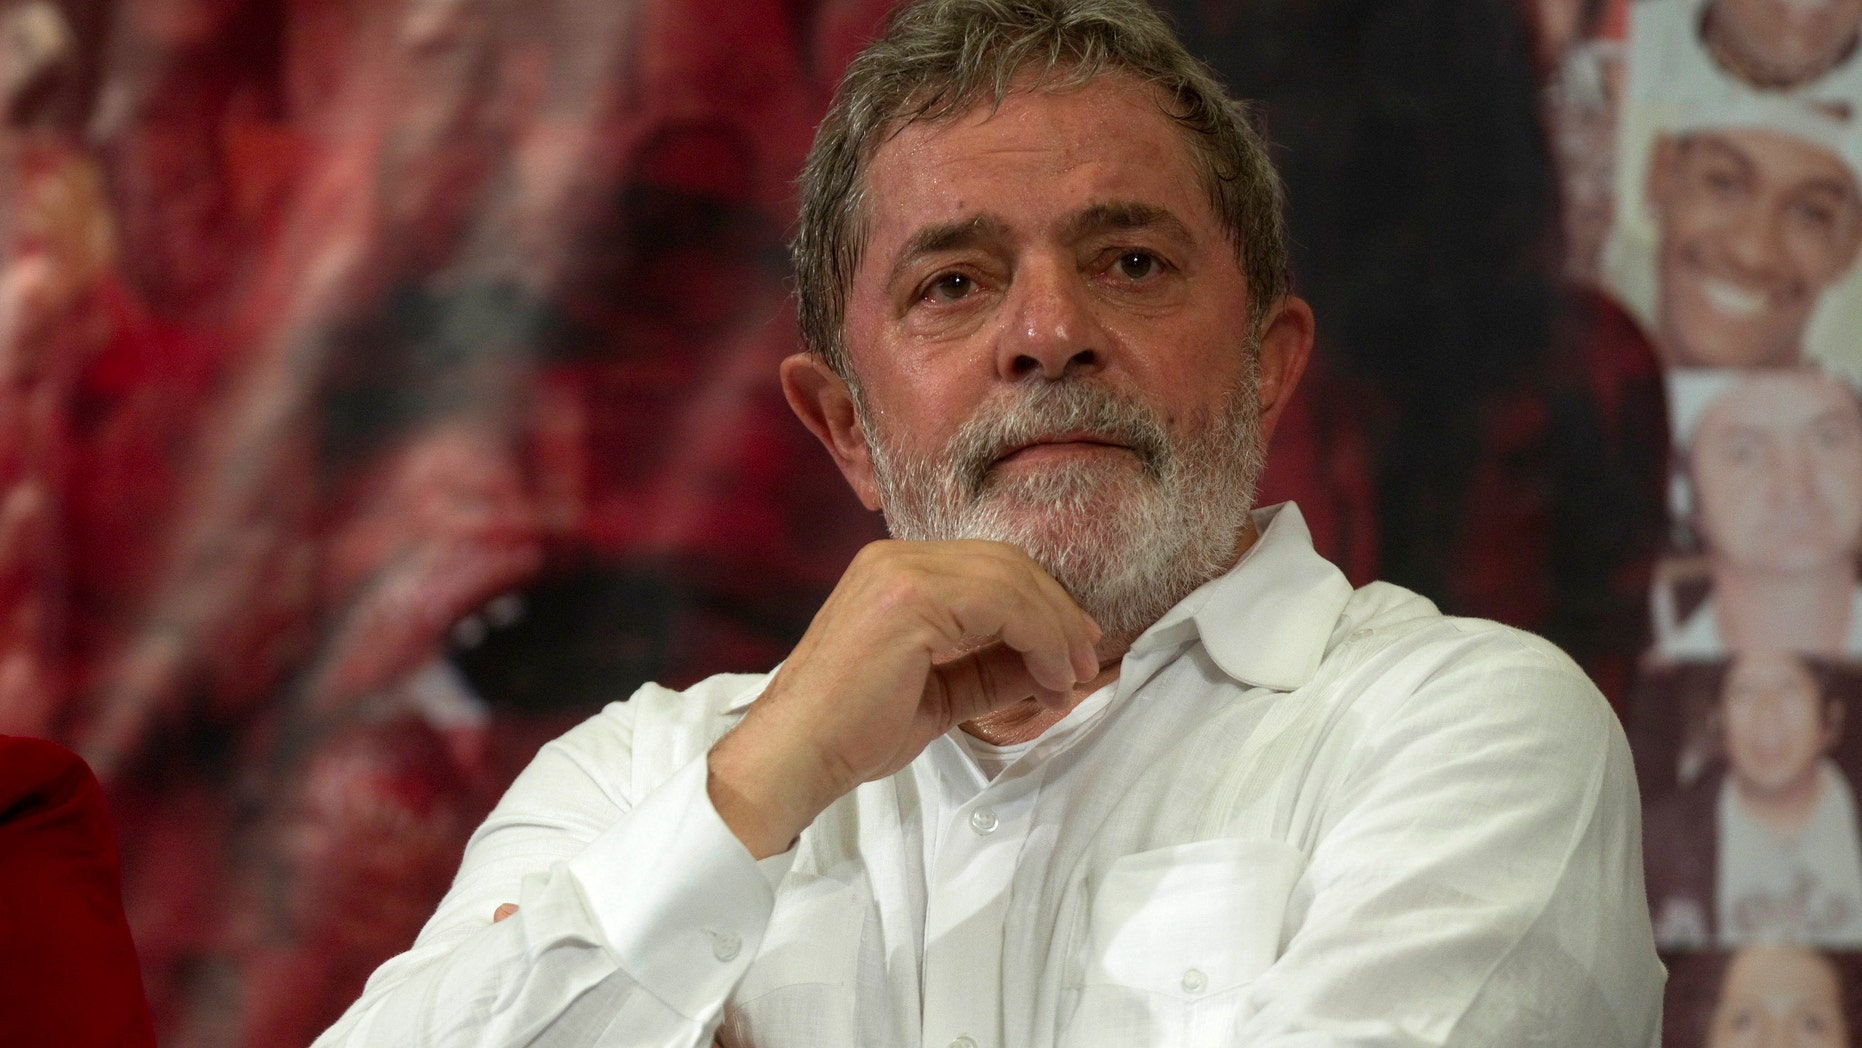 FILE -  In this Dec. 23, 2010 file photo, Brazil's President Luiz Inacio Lula da Silva attends a meeting in Sao Paulo, Brazil. Doctors say the former Brazilian president has a tumor in his larynx. Sao Paulo's Sirio Libanes Hospital say in a statement that the tumor was detected Saturday during exams conducted on Silva. The statement says the former president will undergo chemotherapy treatment starting next week. (AP Photo/Andre Penner)